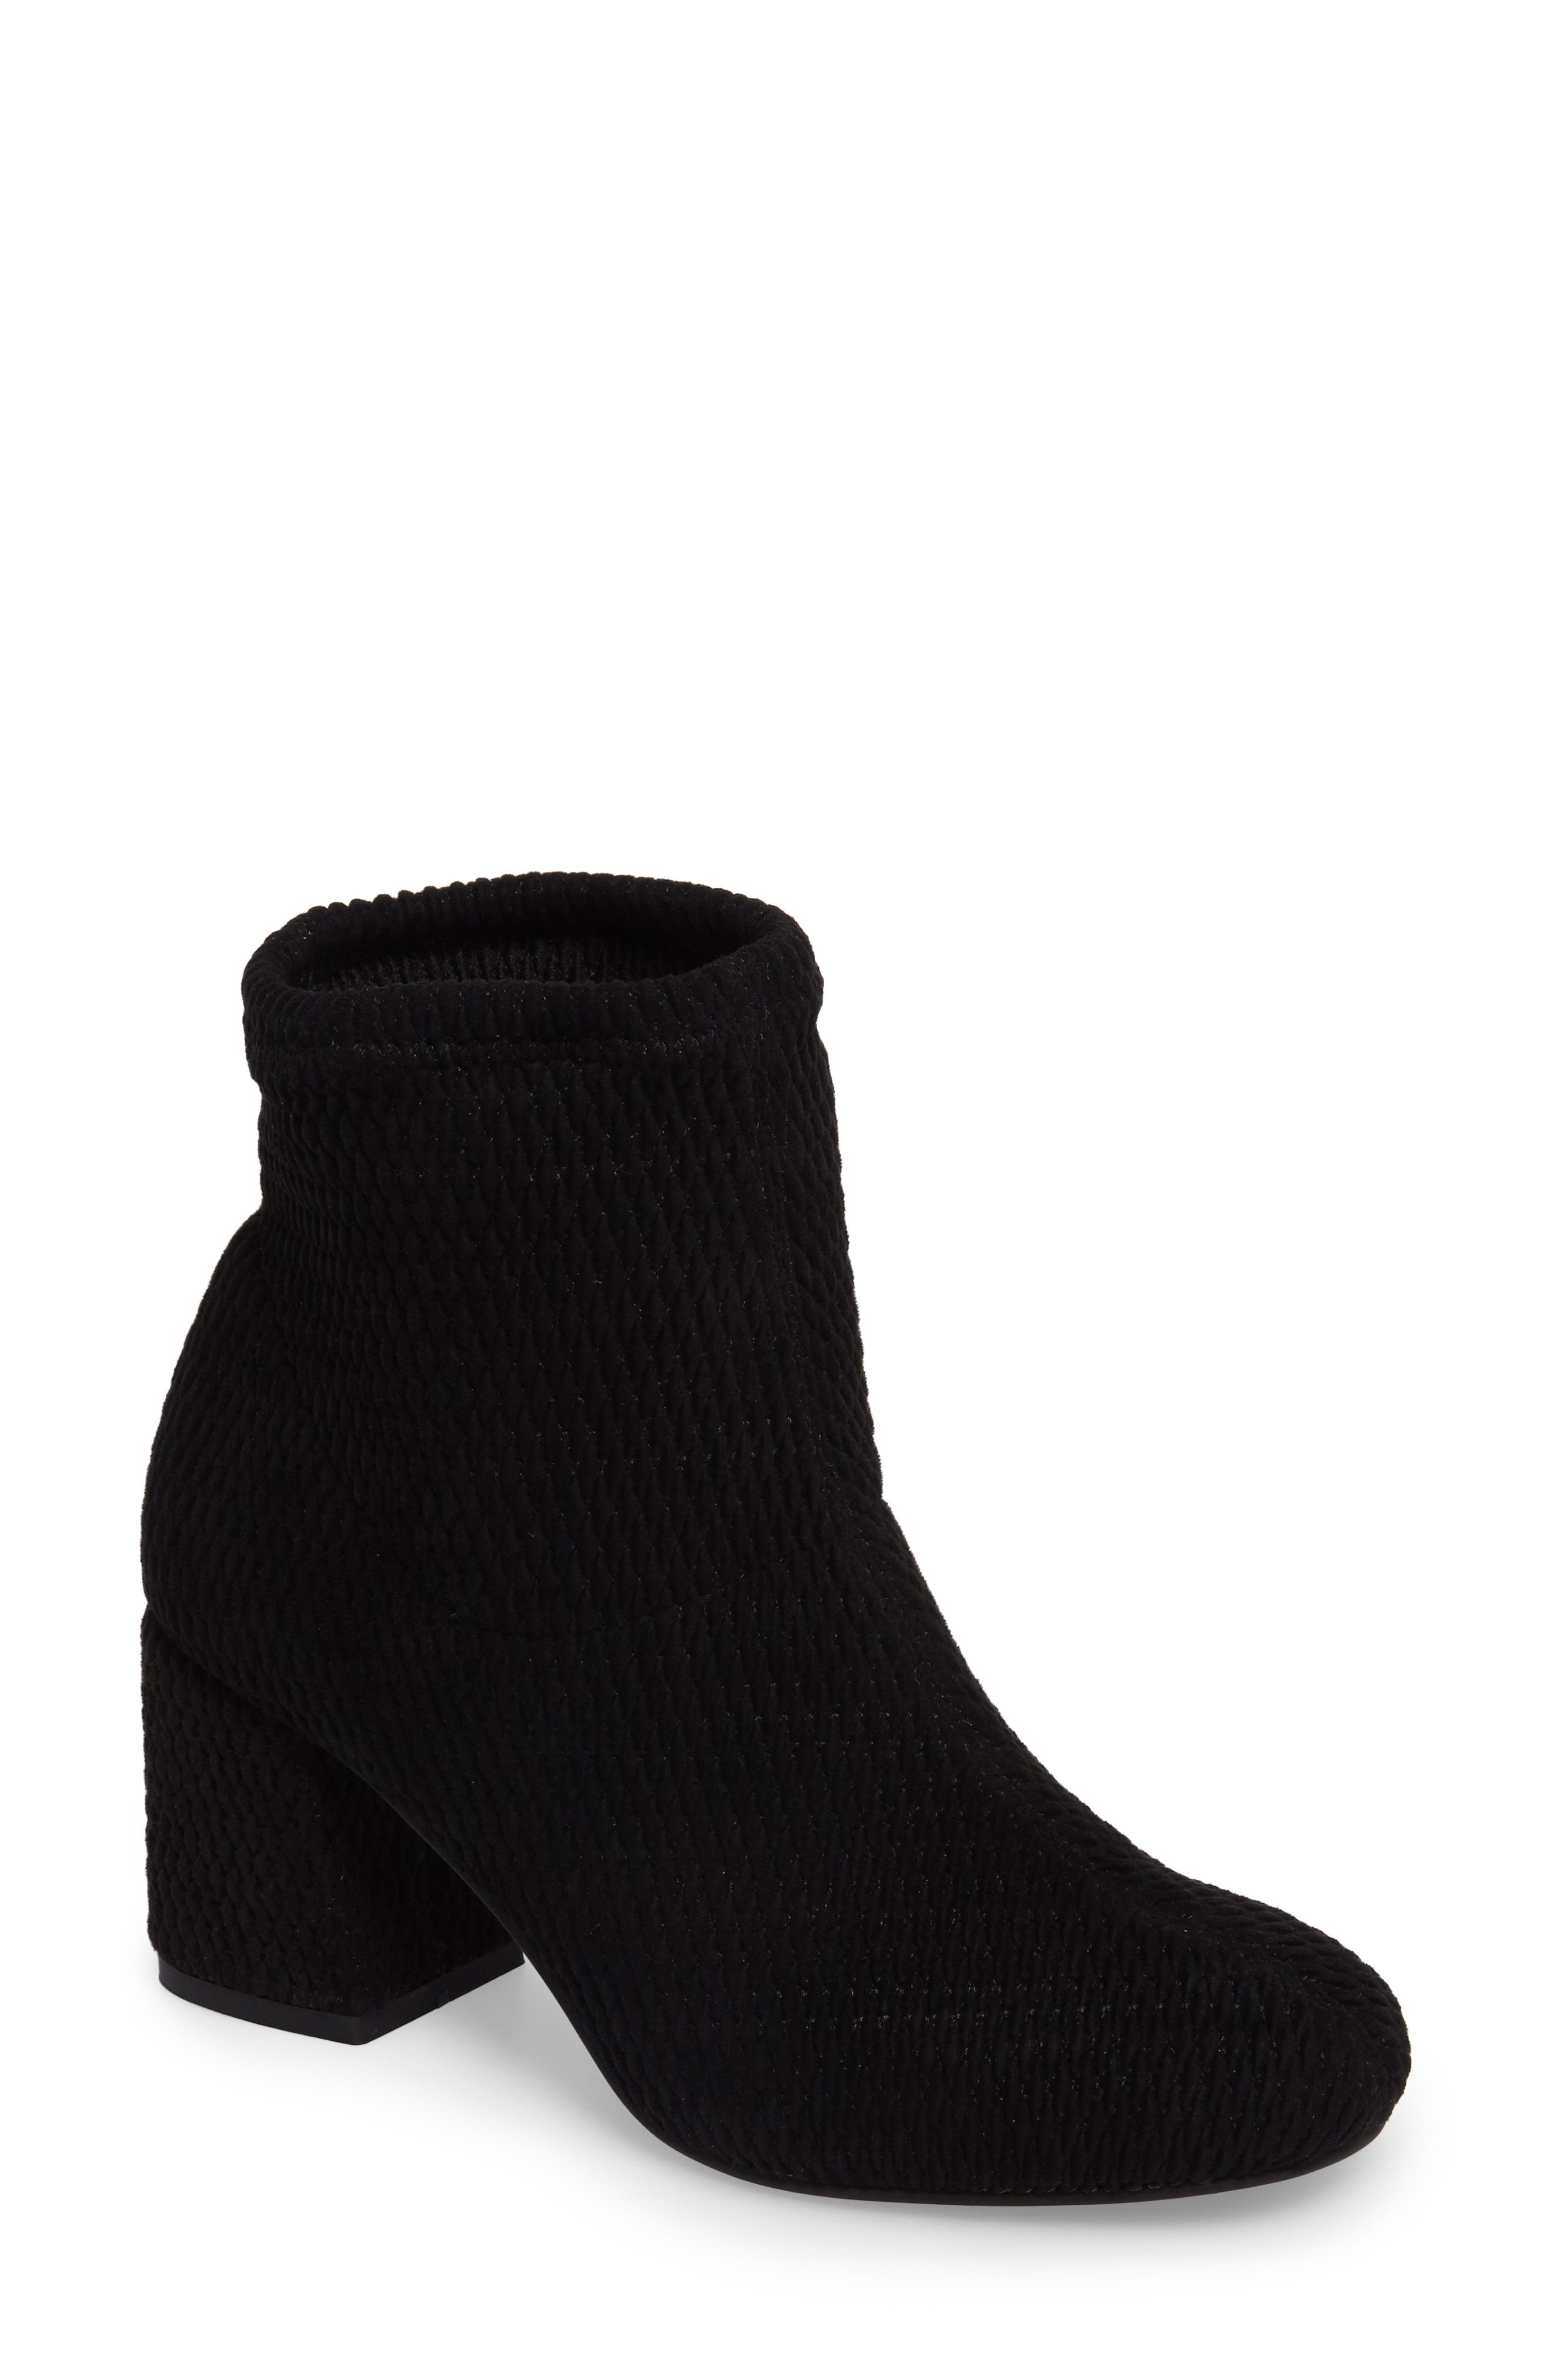 Ad Lib Sock Bootie,                             Main thumbnail 1, color,                             Black Fabric